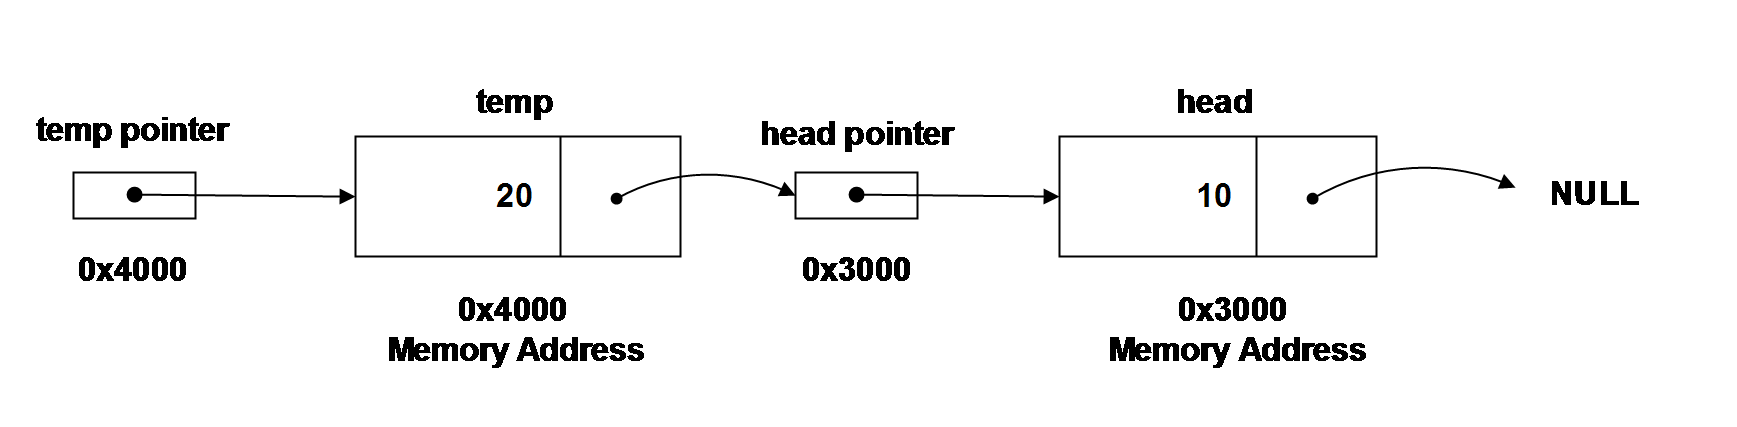 Pointer action in Linked-List